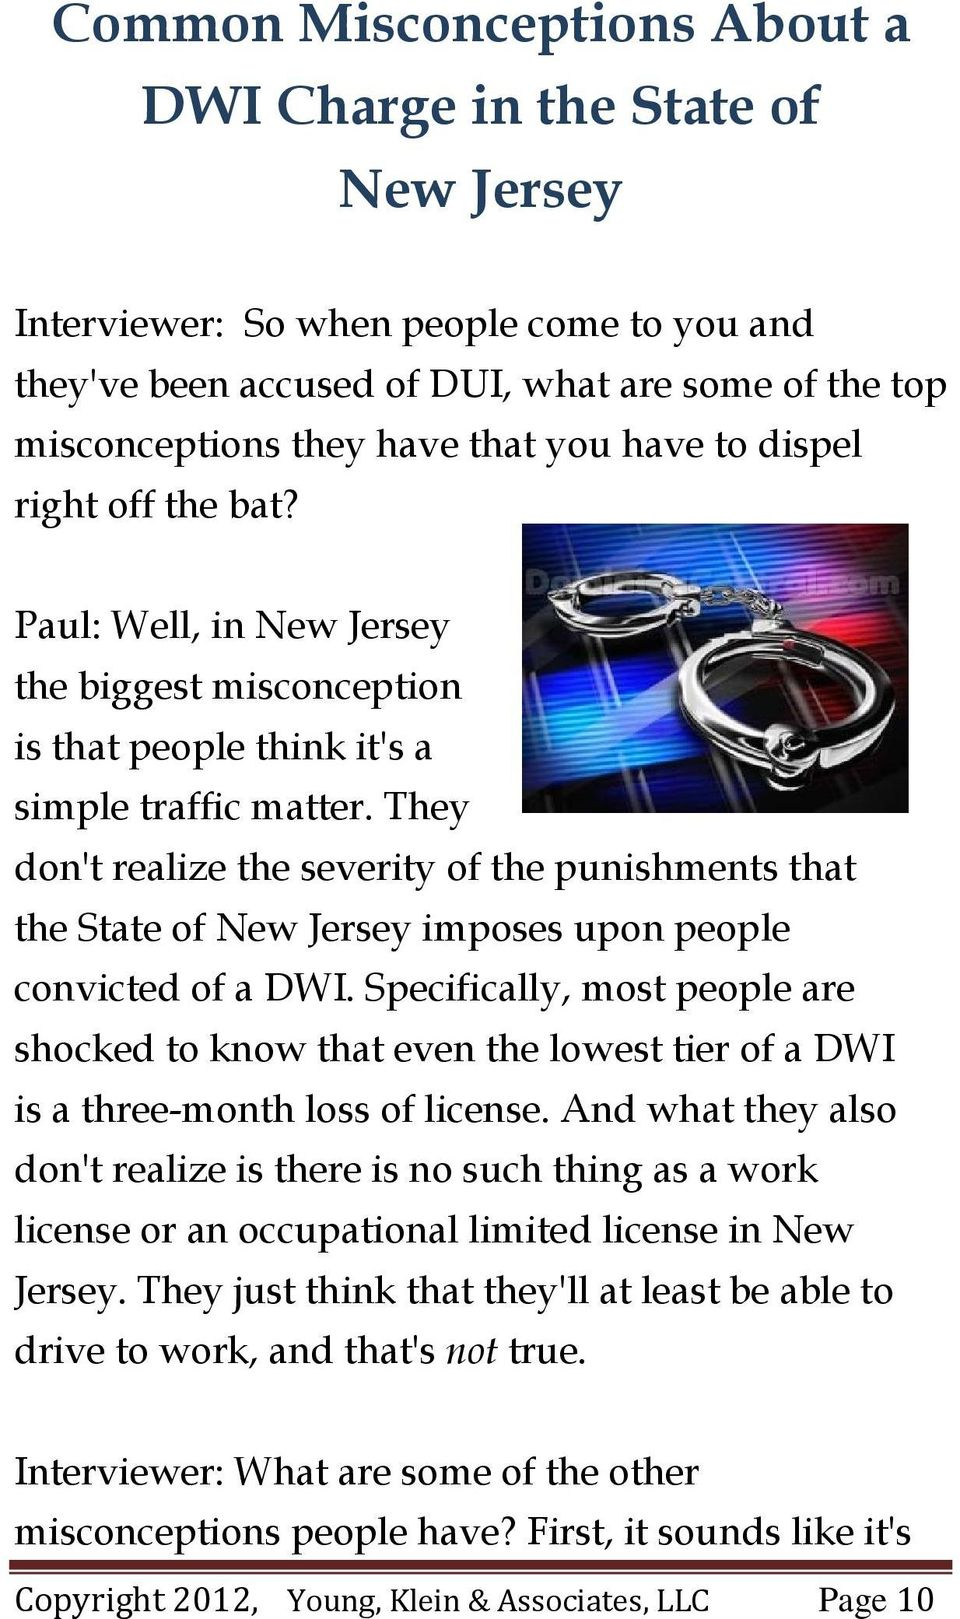 They don't realize the severity of the punishments that the State of New Jersey imposes upon people convicted of a DWI.